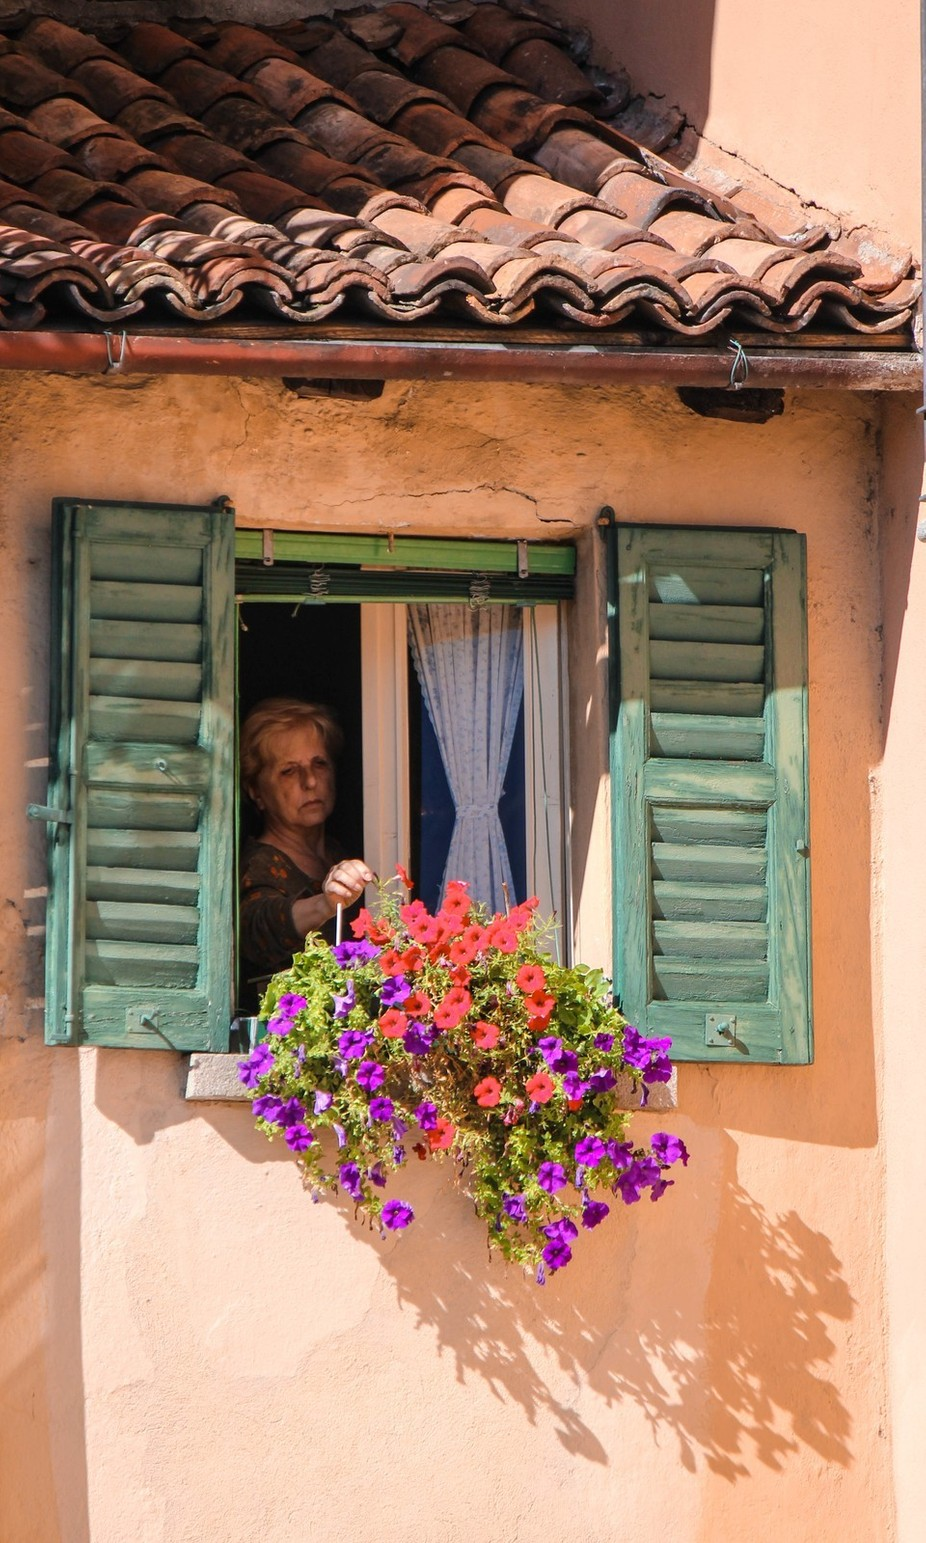 A street capture in a  lovely Italian town near Lake Cuomo, Northern Italy.